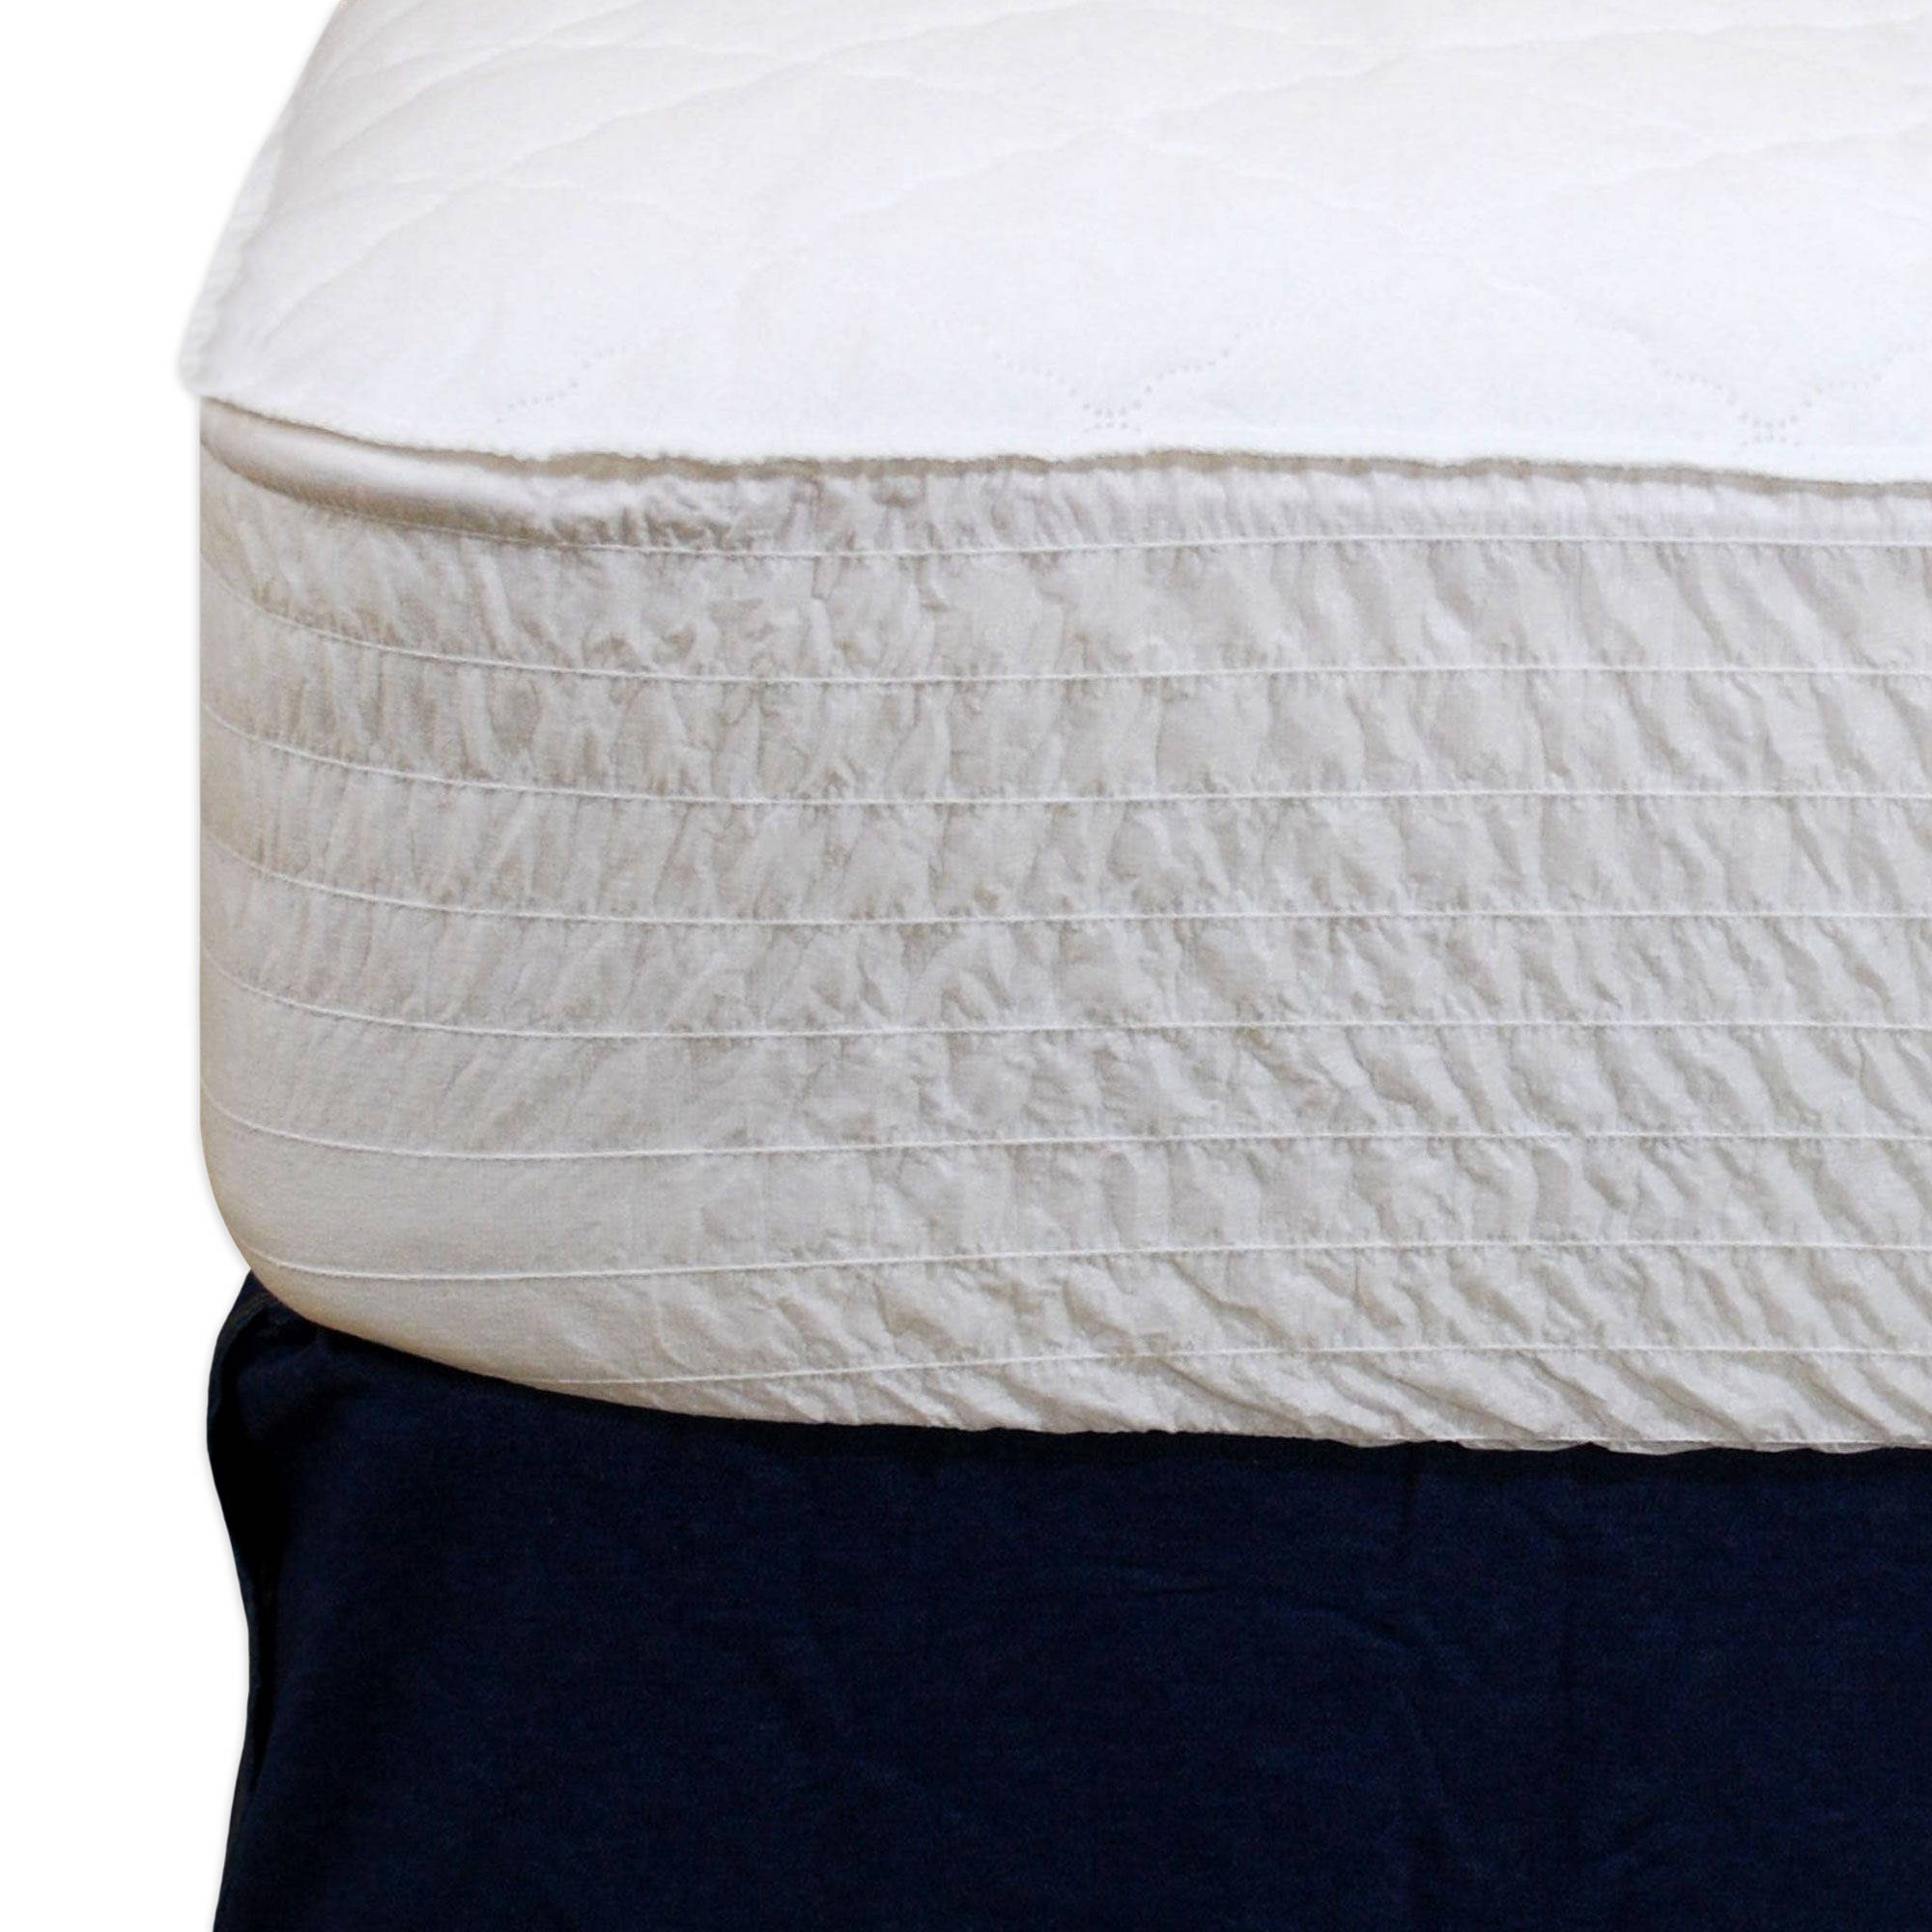 Simmons Beautyrest Waterproof Mattress Pad